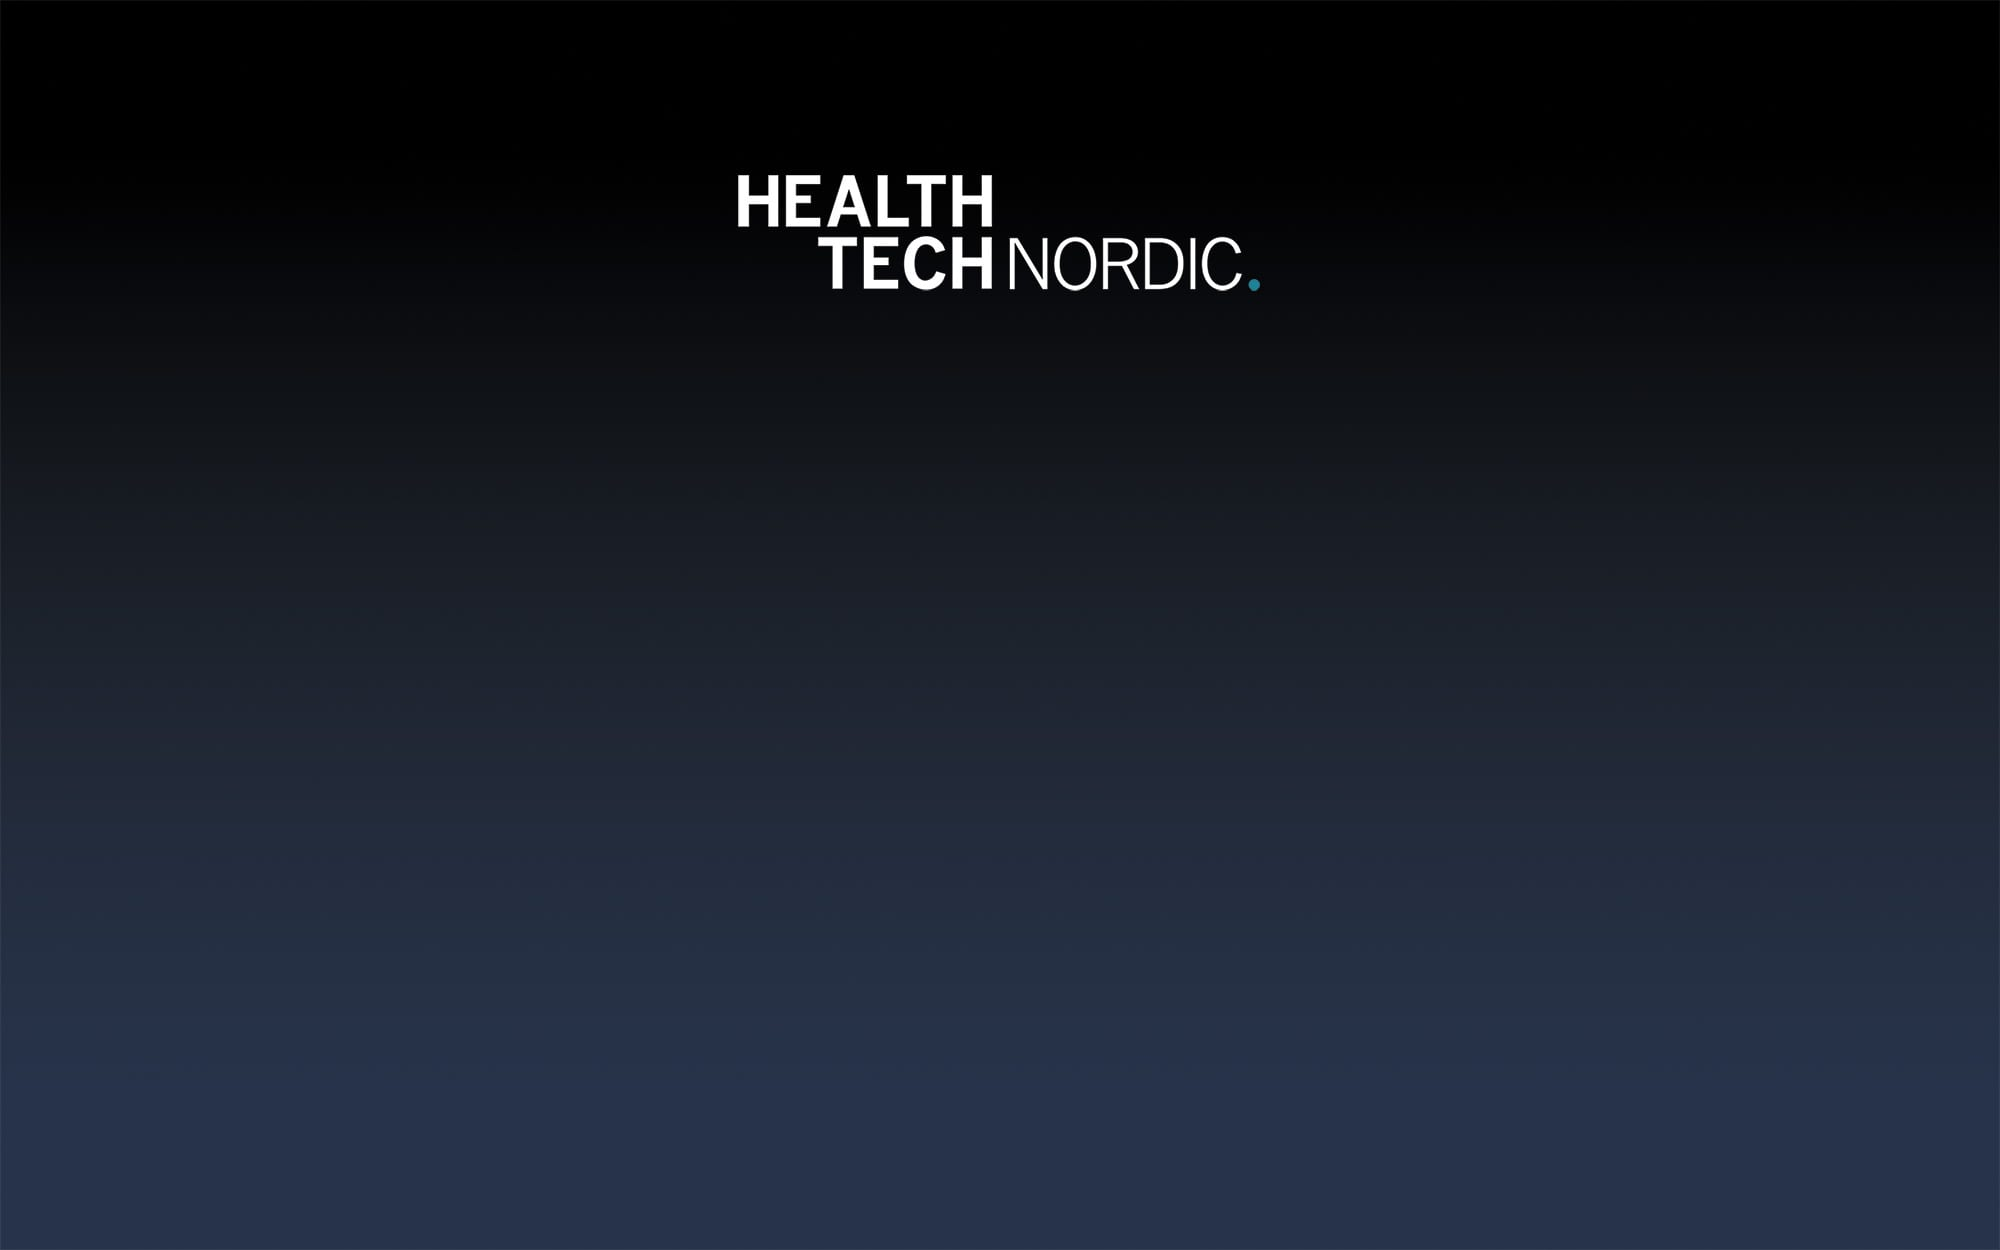 STRONGMom is now part of HealthTech Nordic